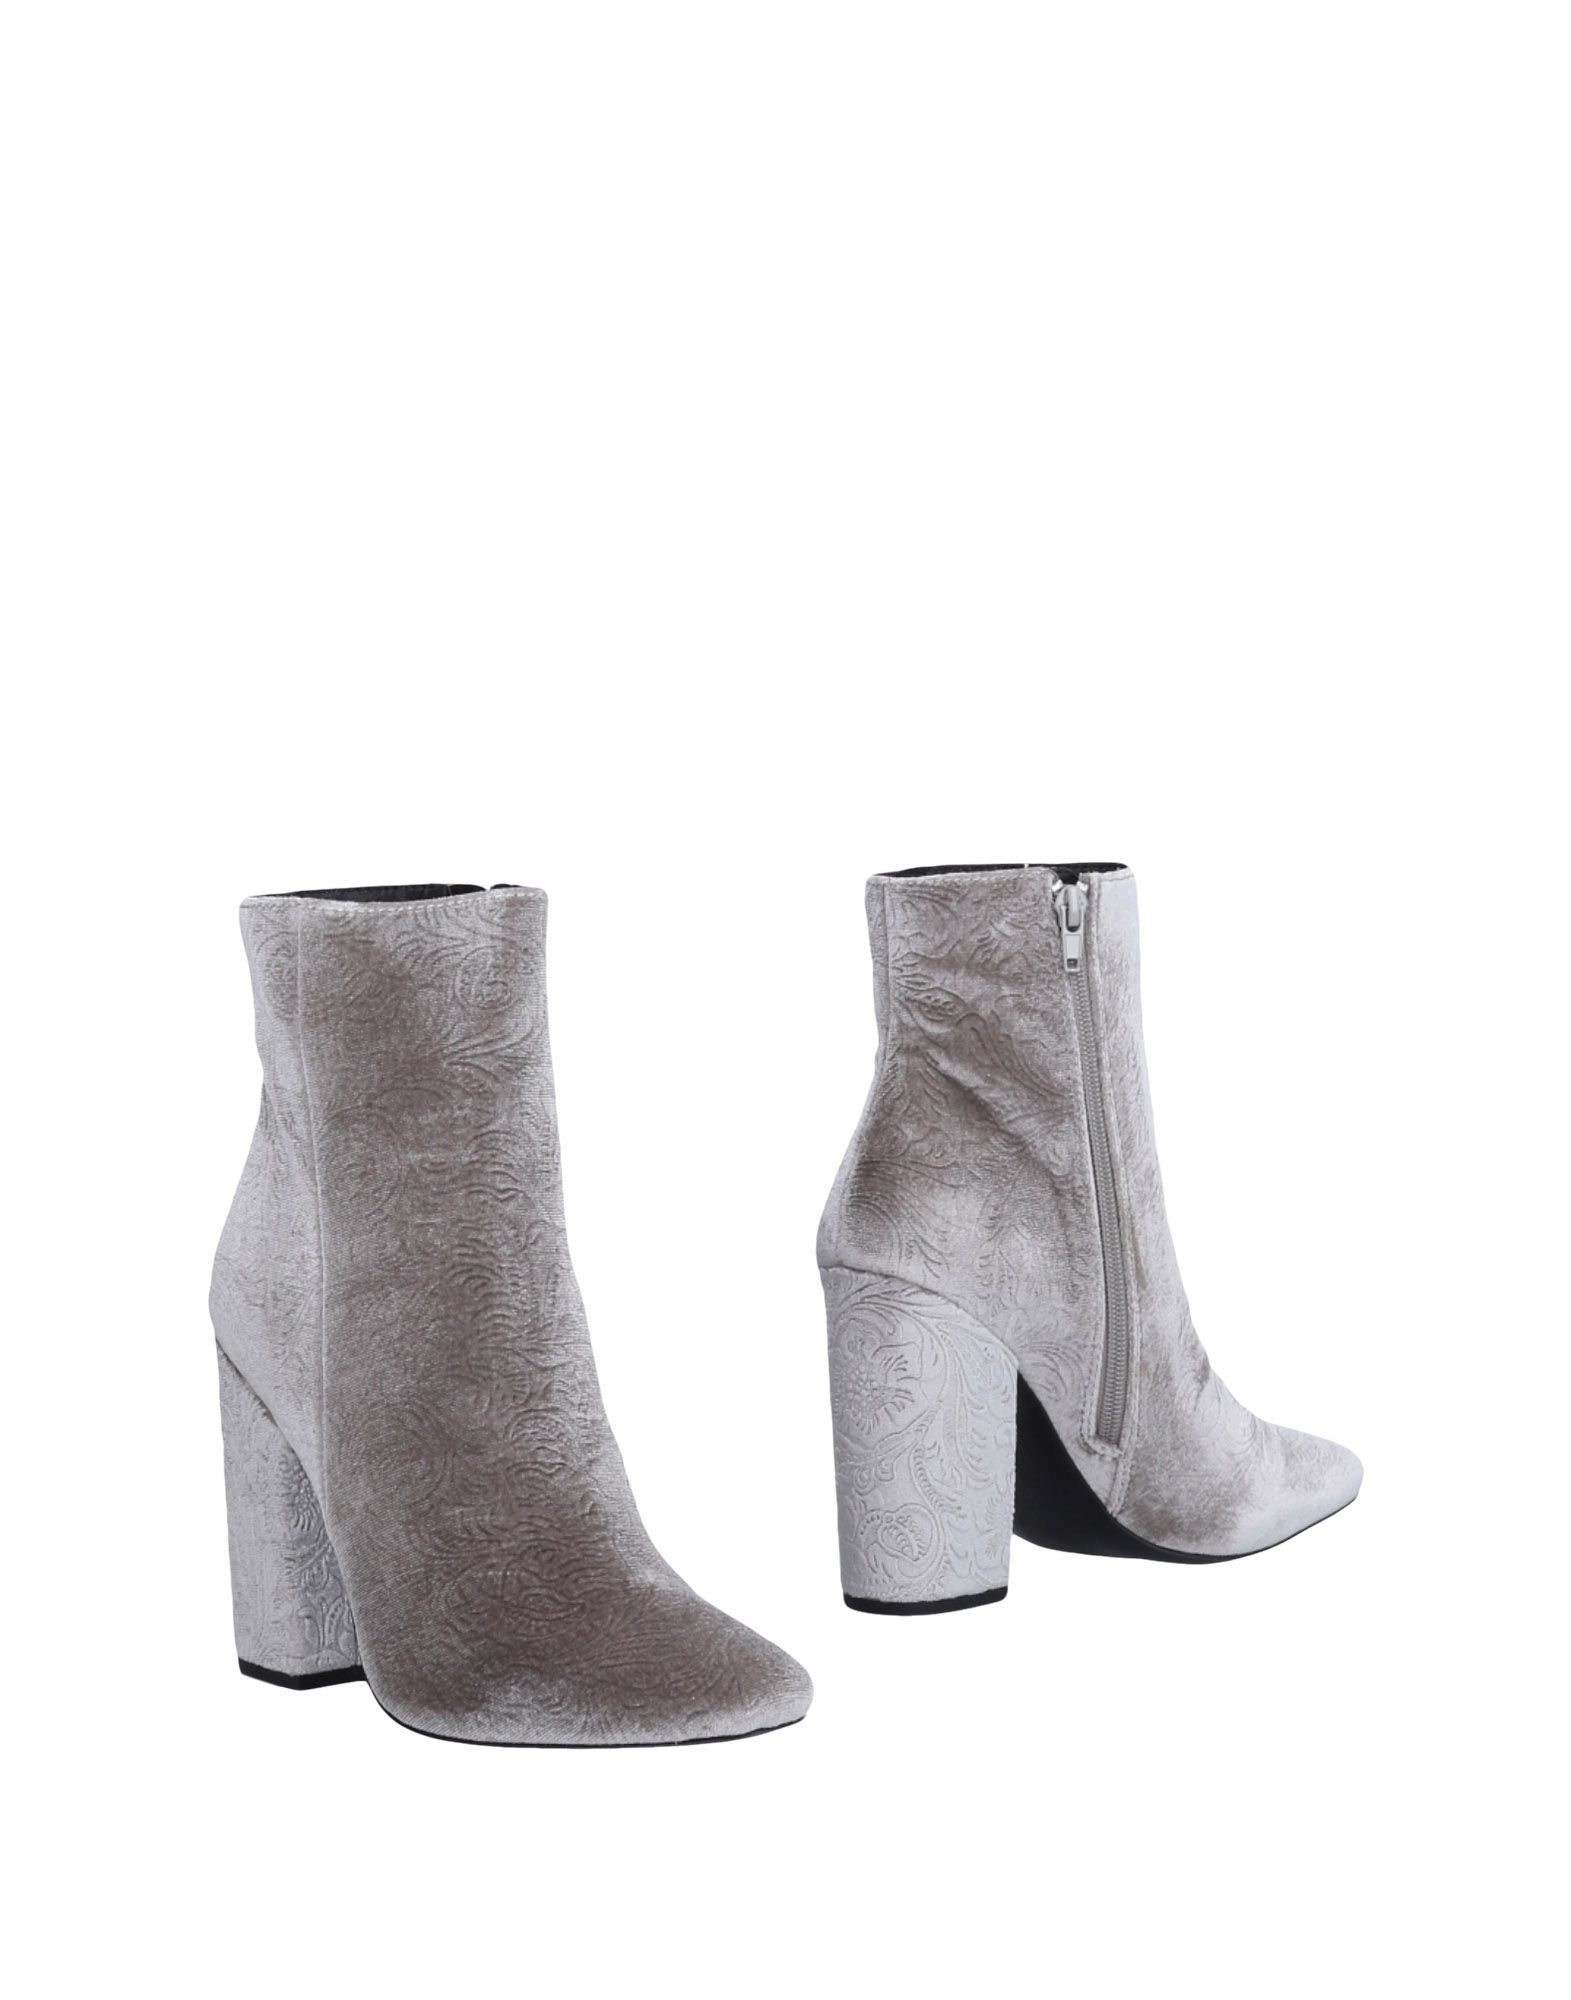 WINDSOR SMITH Ankle Boots in Light Grey